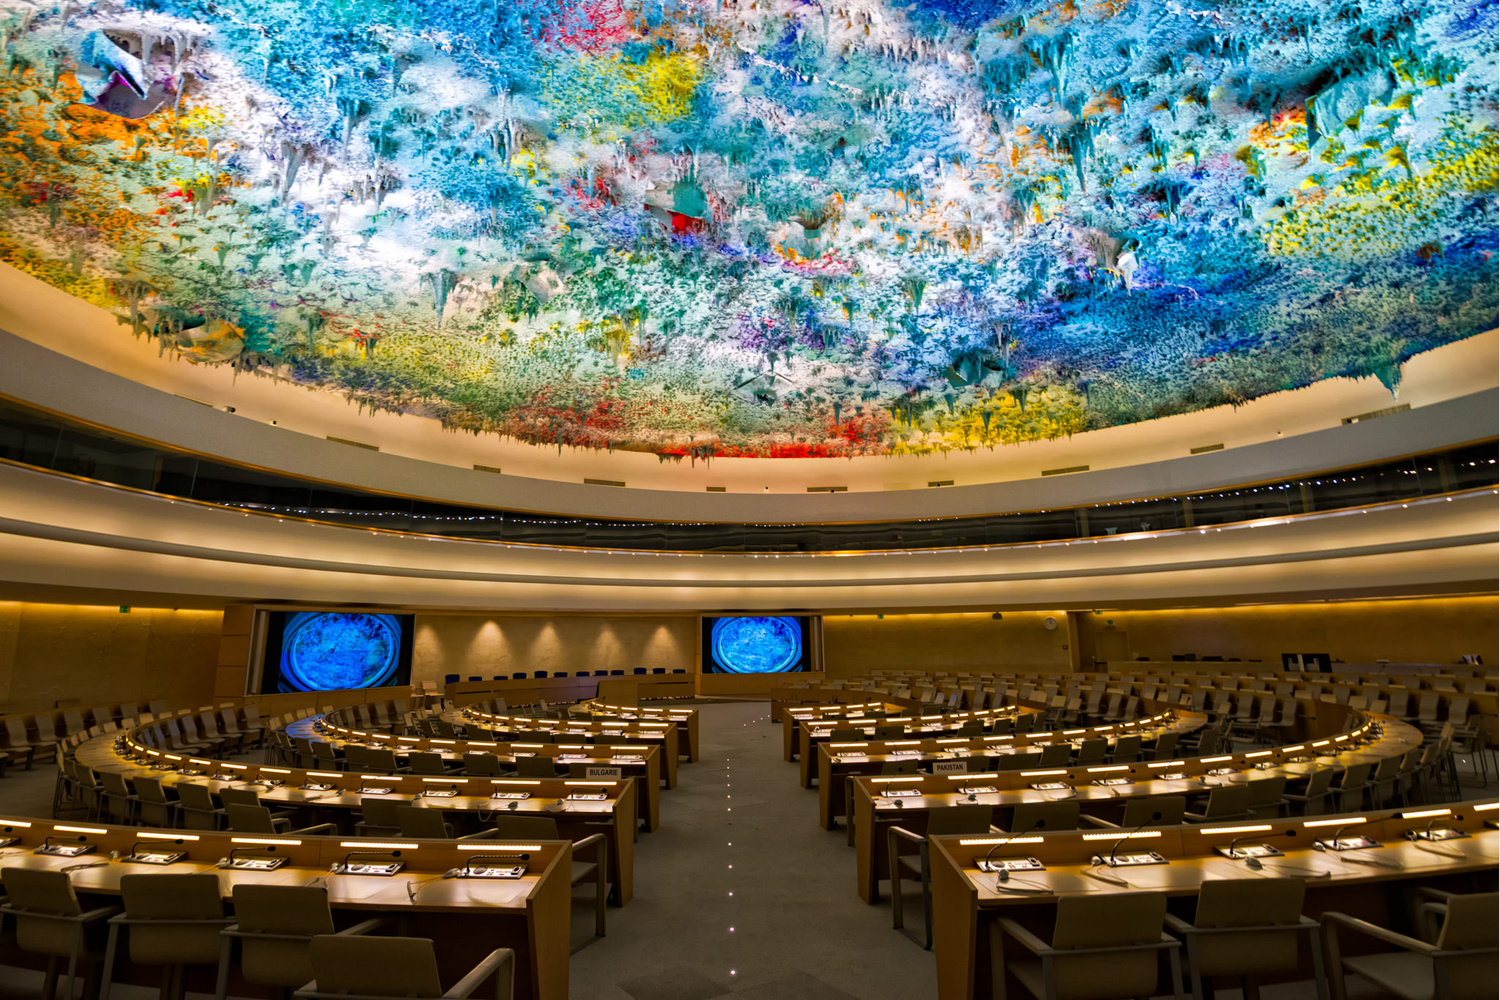 United Nations Human Rights Room, Geneva by Nico Trinkhaus